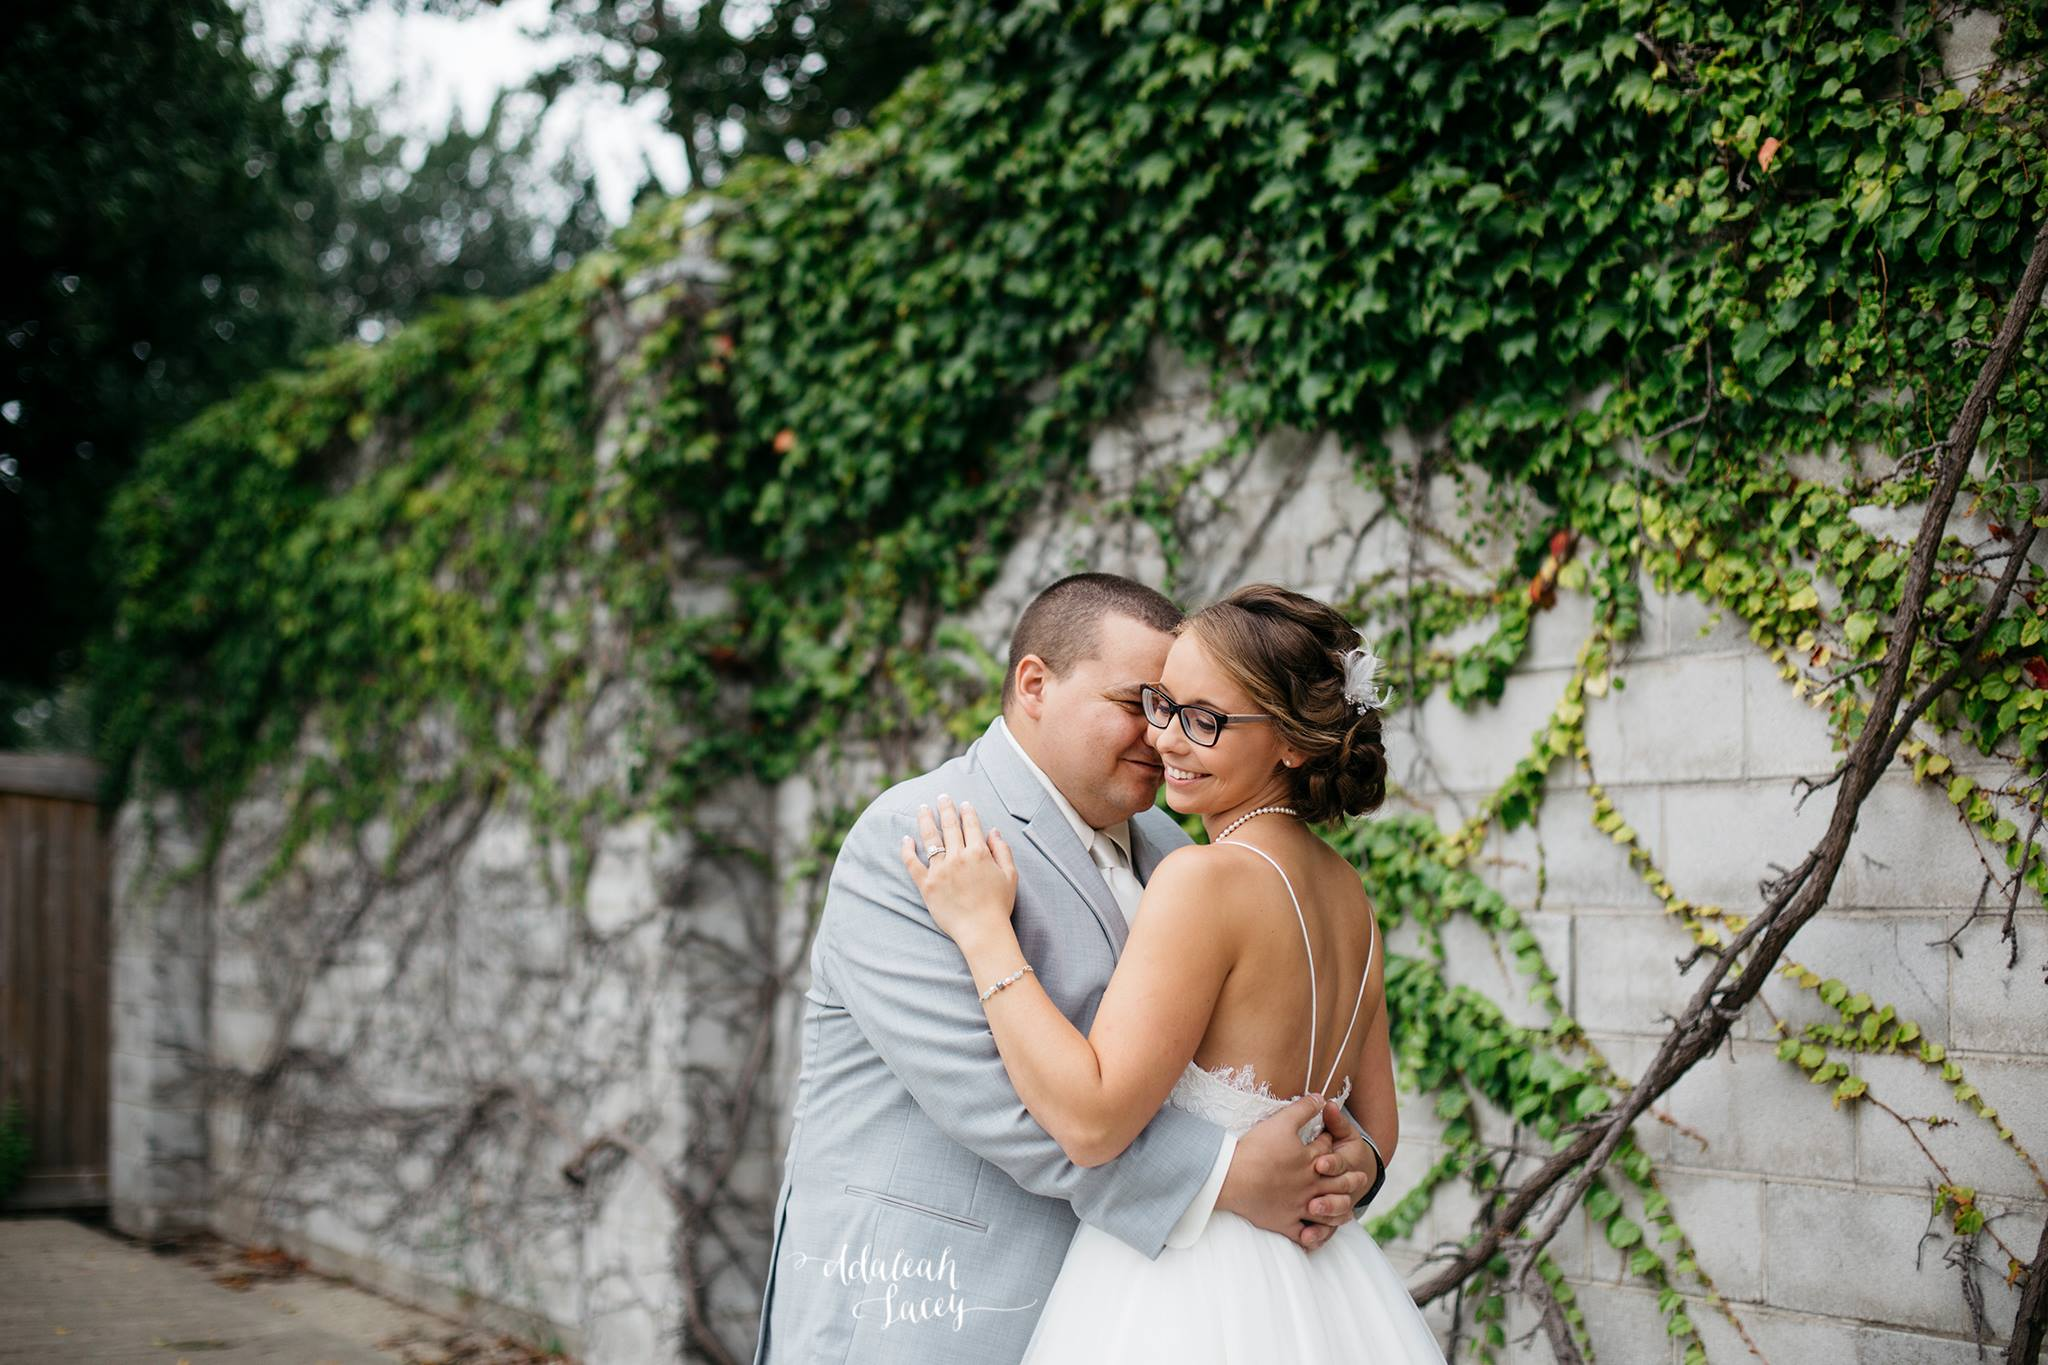 Bride: Devin  Photographer:  Adaleah Lacey Photography